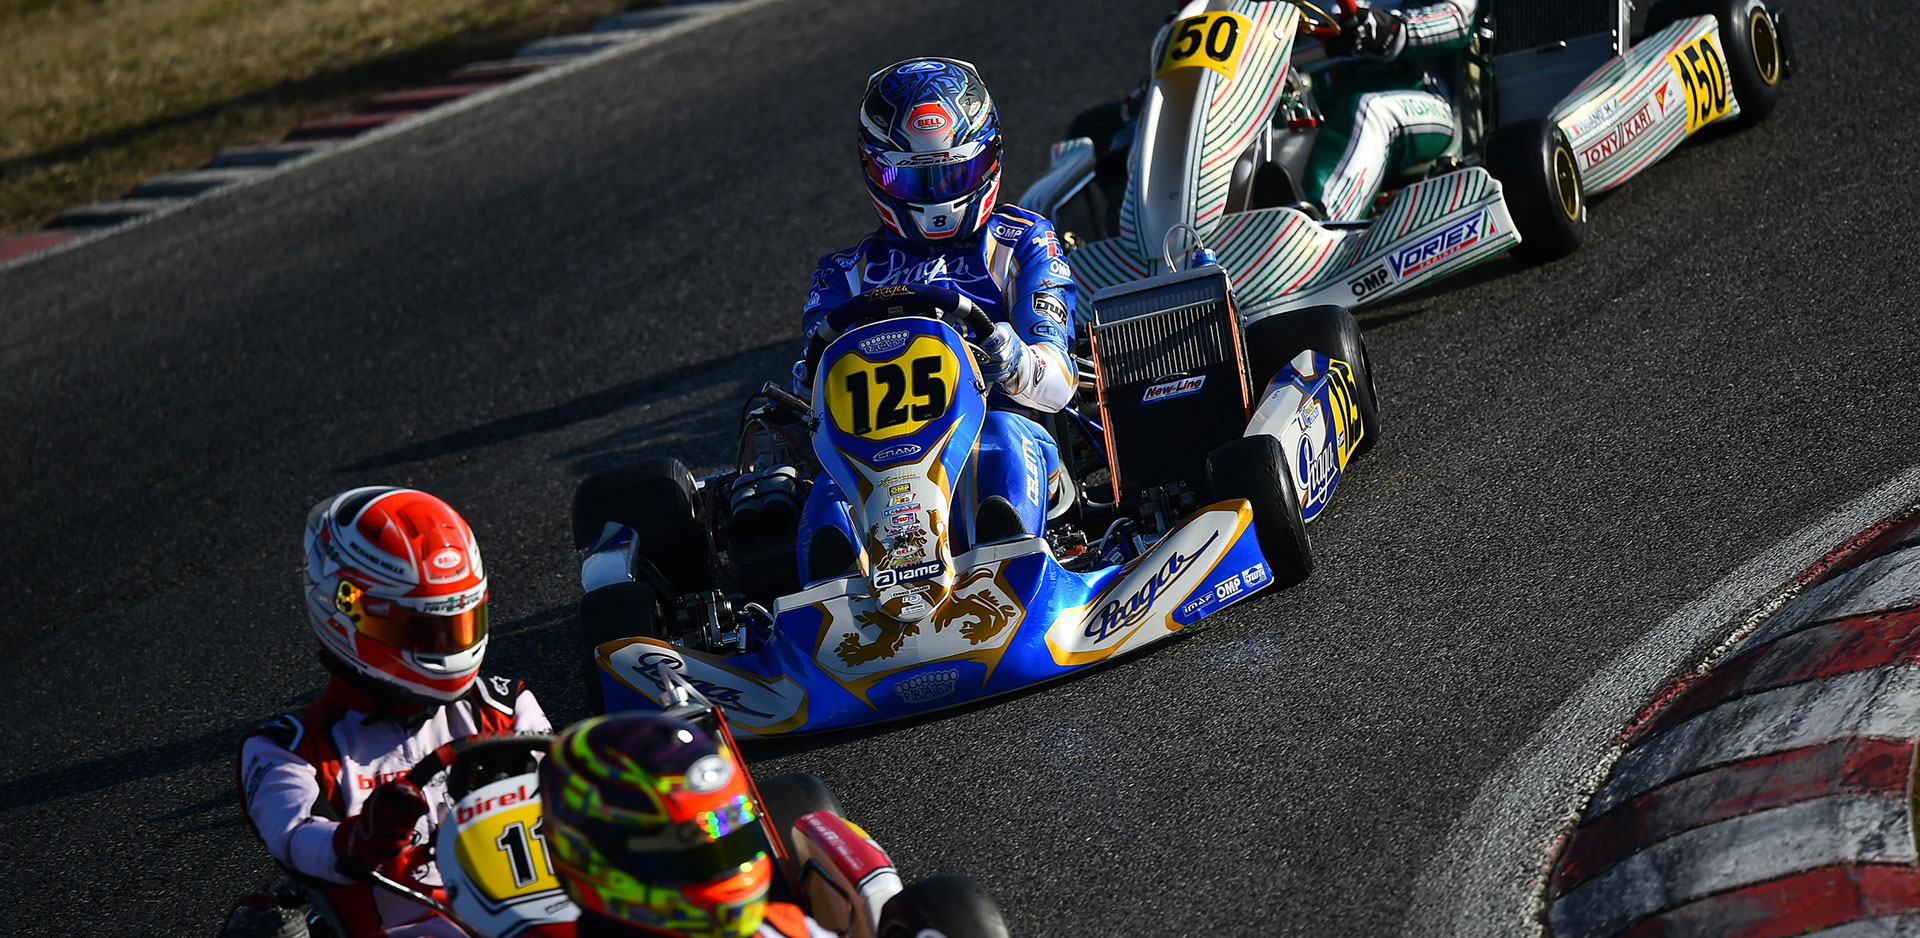 Massive presence of IPKarting chassis at Lonato for the WSK Super Master Series